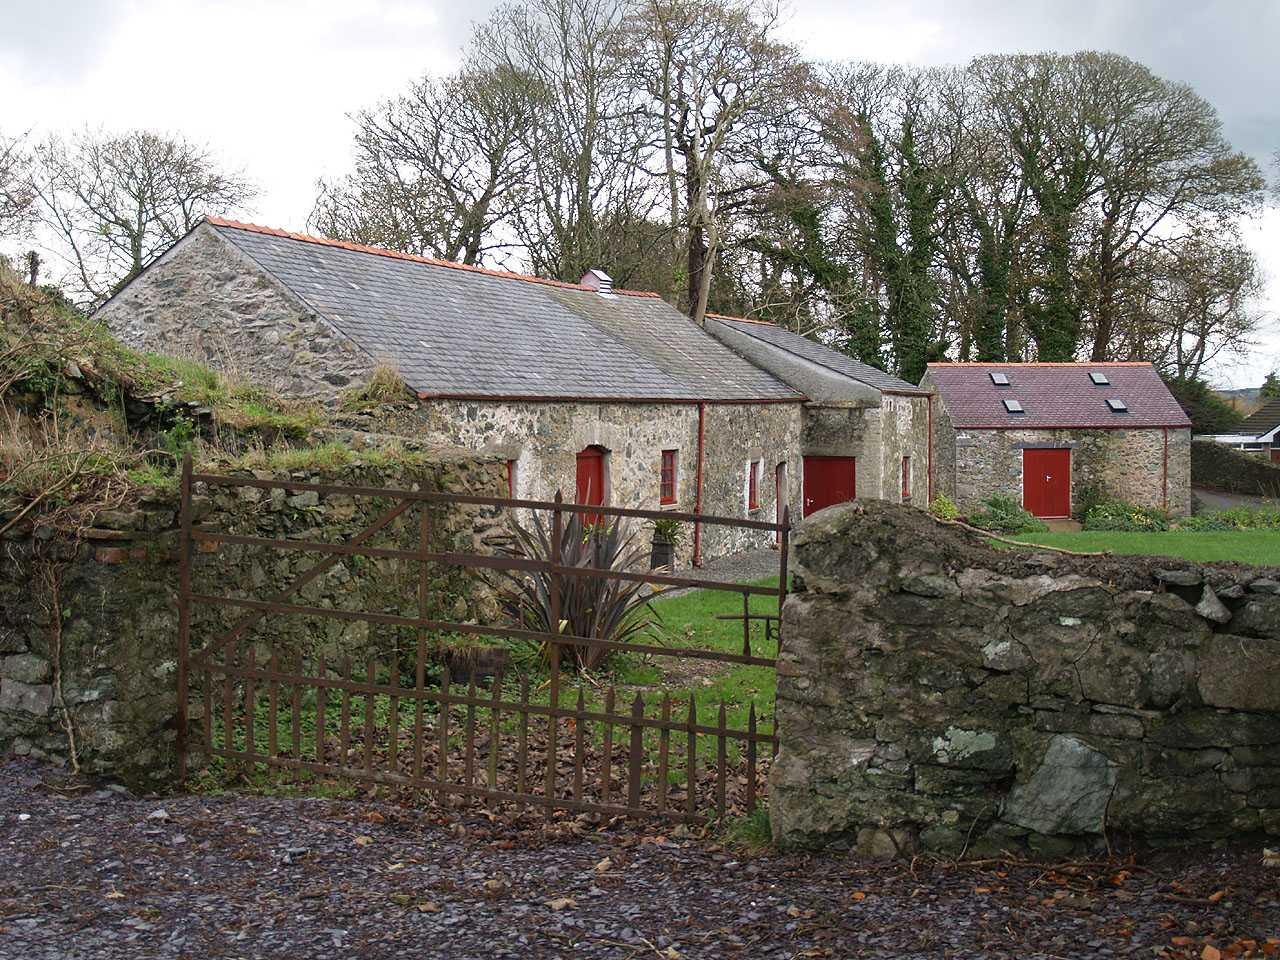 Anglesey, Llangefni Water Mill Gate and Outbuildings